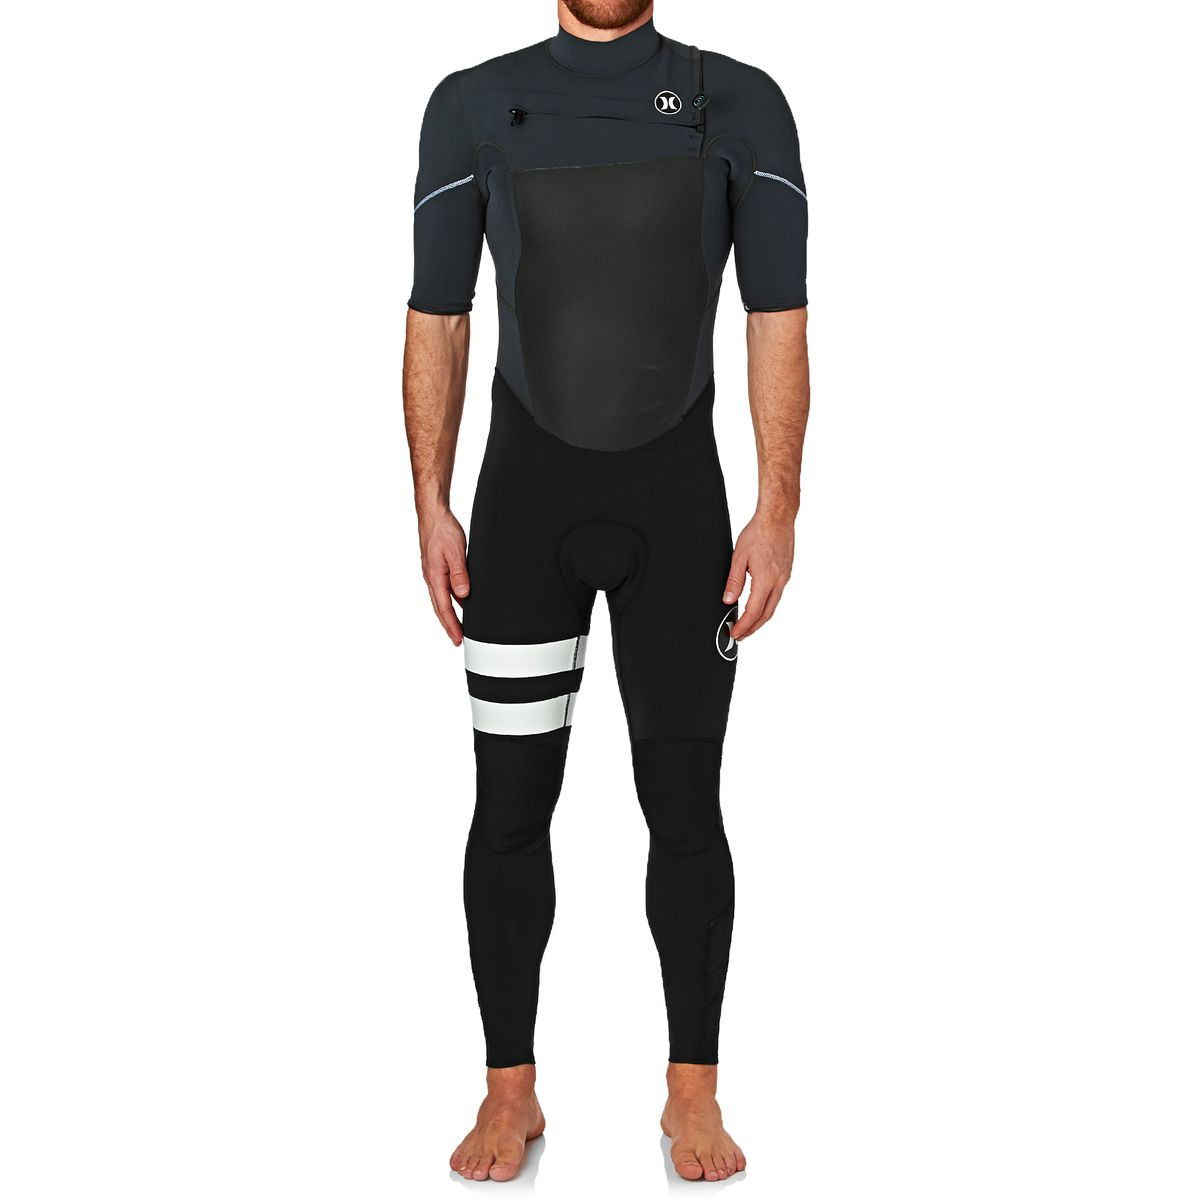 Hurley Fusion 2mm 2017 Chest Zip Short Sleeve Wetsuit - Anthracite